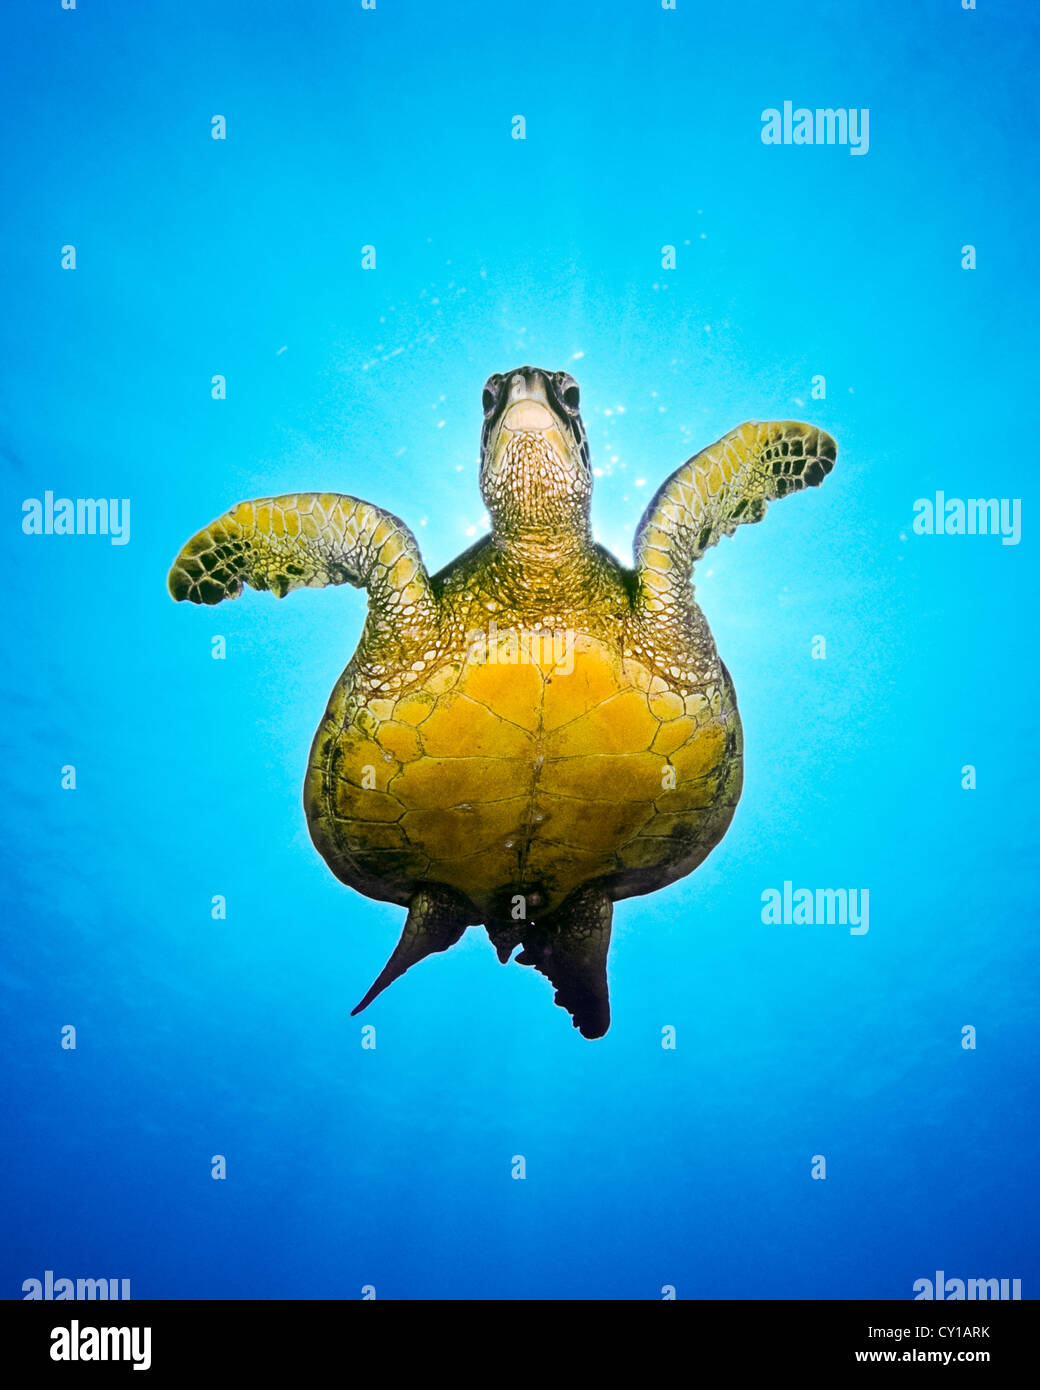 Green Sea Turtle, Chelonia Mydas, Big Island, Hawaii, USA Stockbild